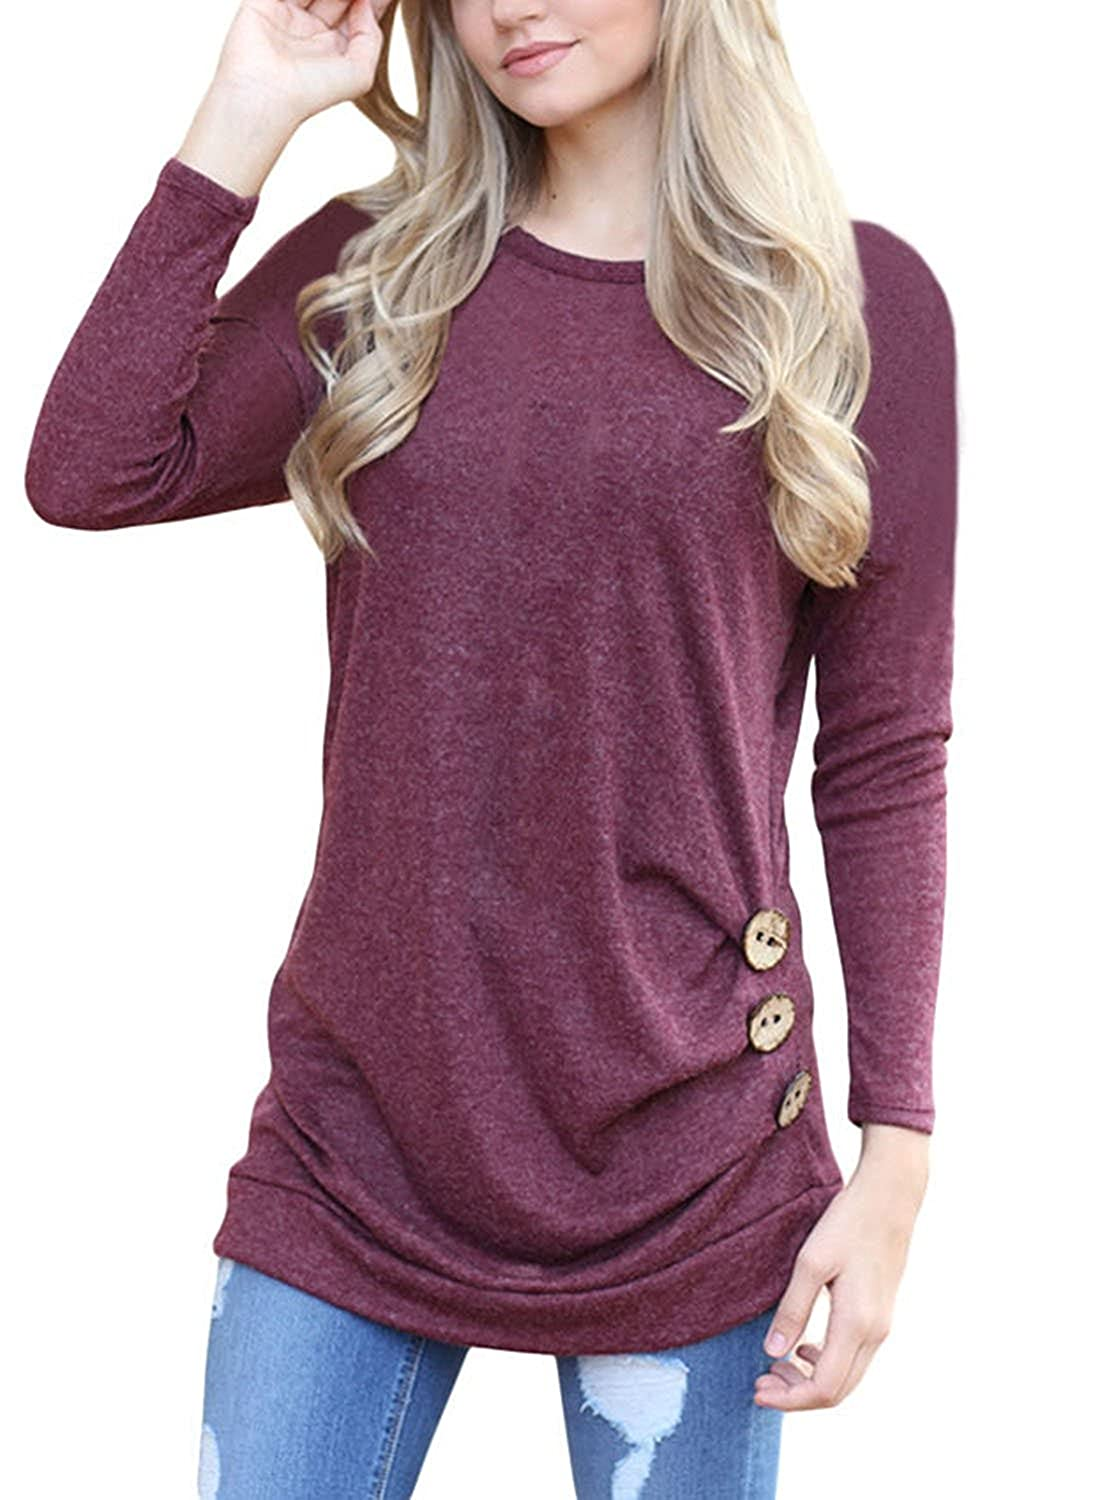 LISTONE Women Casual Long Sleeve Buttons Decor Crew Neck Tunic shirts loose Blouse Tops ZY-2007-P-